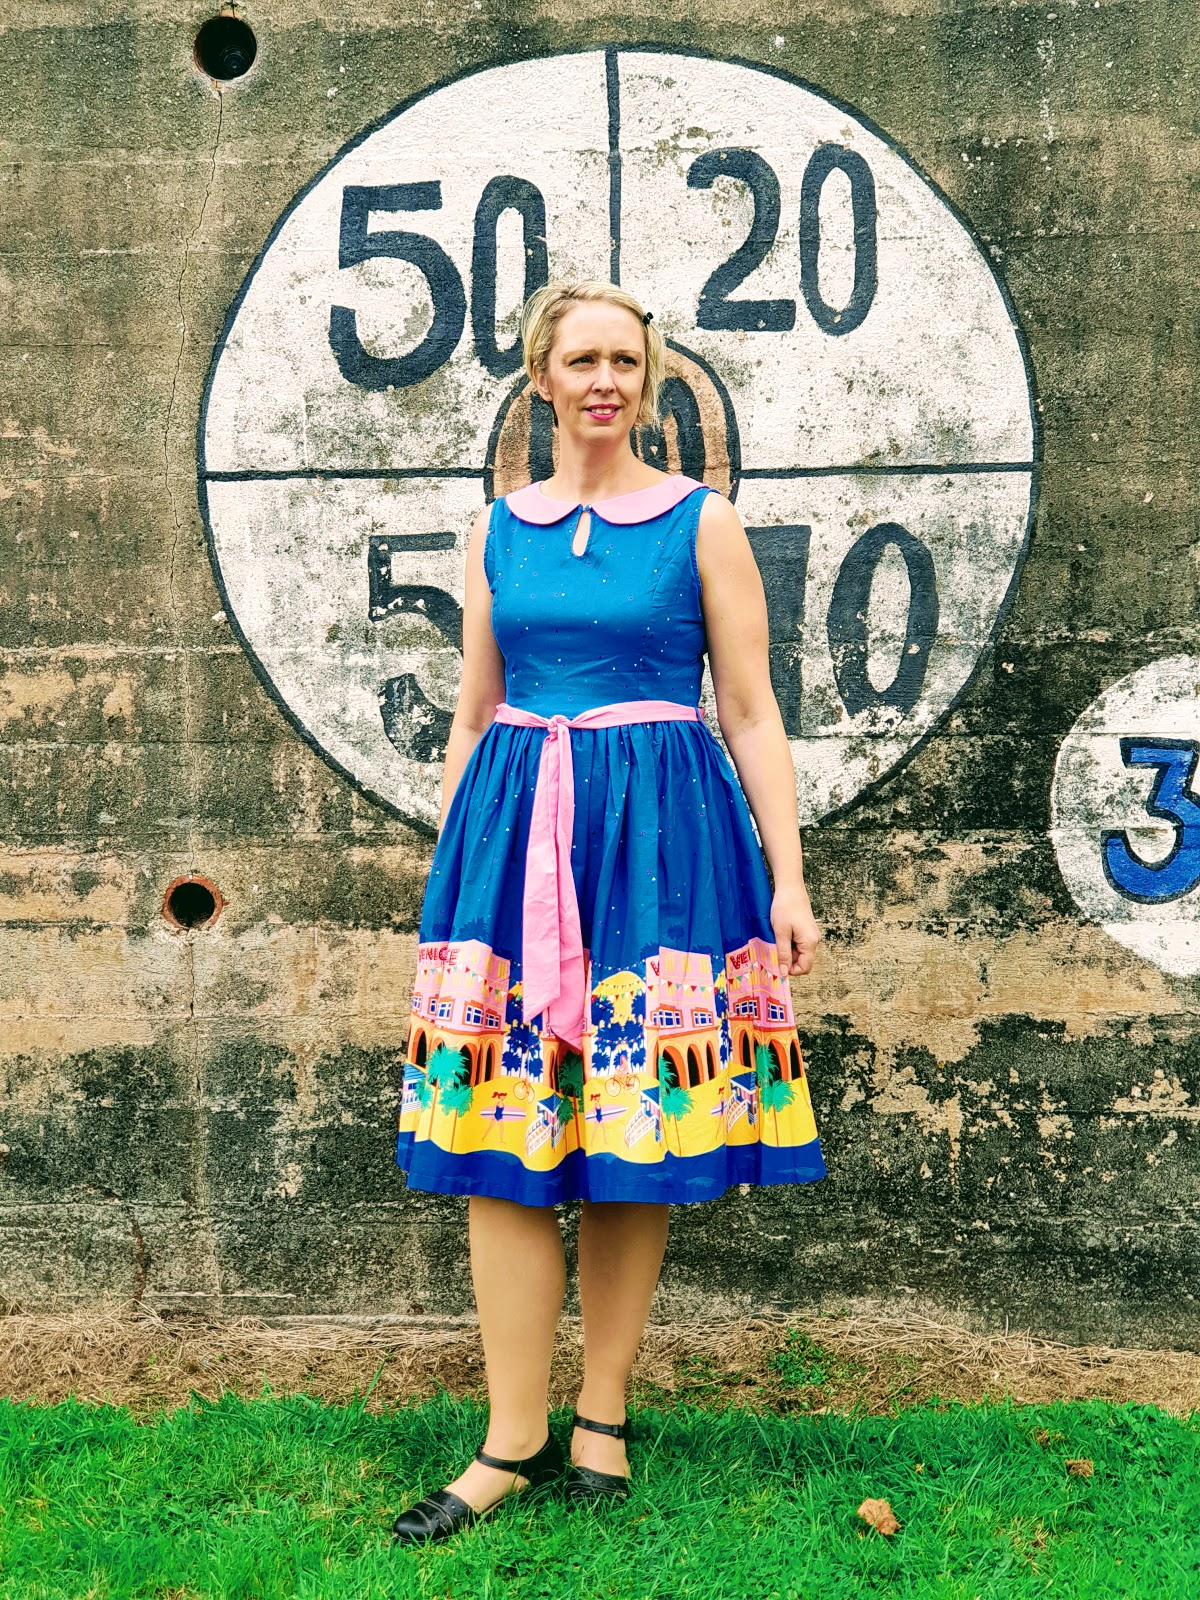 Venice Beach Swing Dress: Over 40 Style